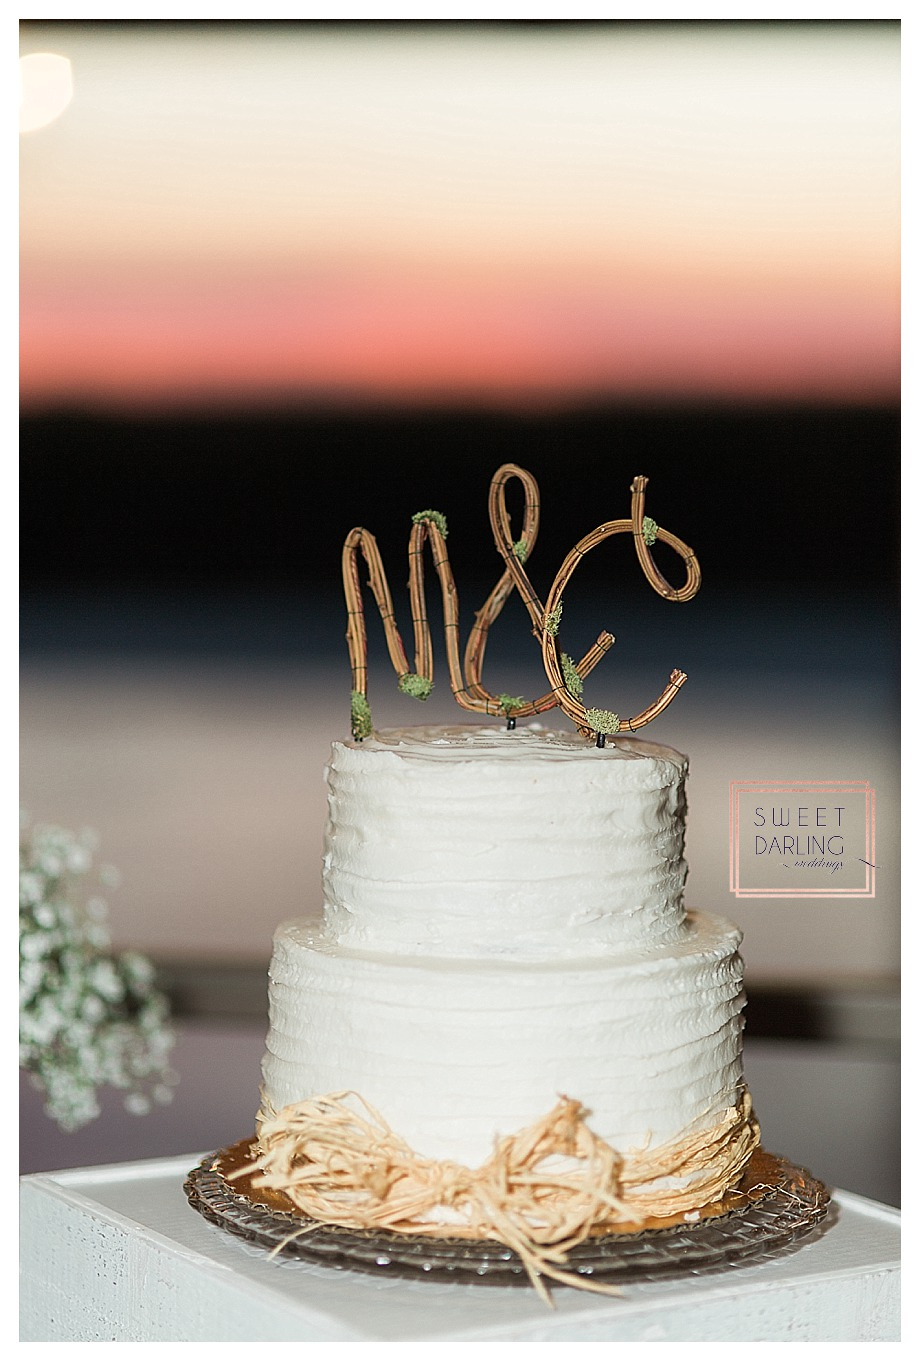 wedding cake with wooden stick iniitials